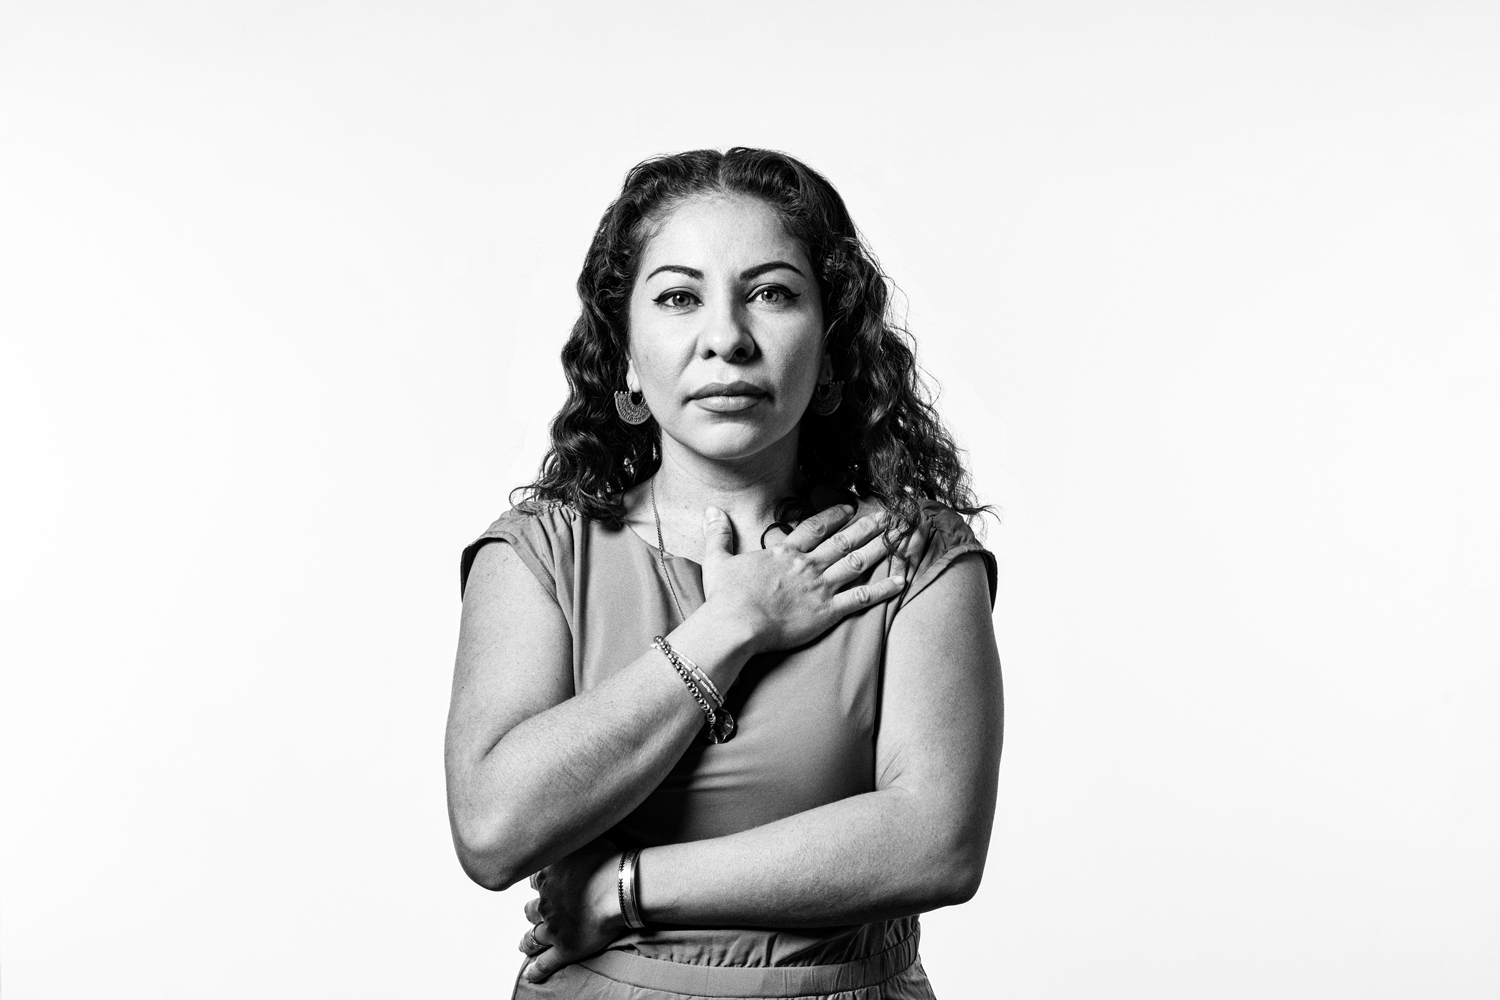 Studio portrait of Michelle Angela Ortiz, mural artist and activist. Shot for April 2019 issue of Philadelphia Magazine.